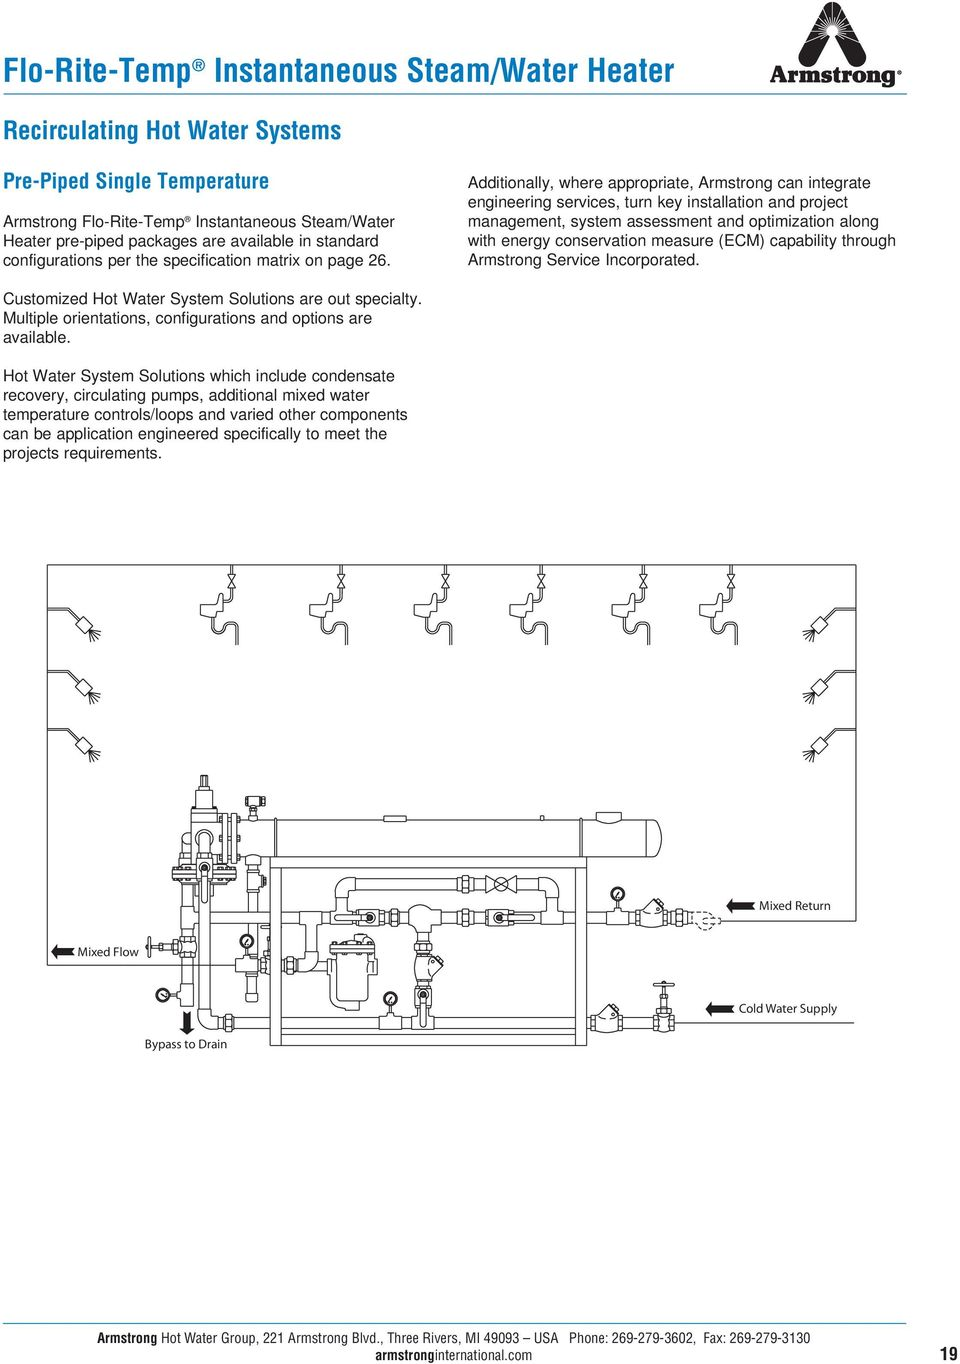 Water Heating Temperature Control Feed Forward Digital Pdf Hot System Diagram In Addition Wiring Additionally Where Appropriate Armstrong Can Integrate Engineering Services Turn Key Installation And Project 20 Recirculating